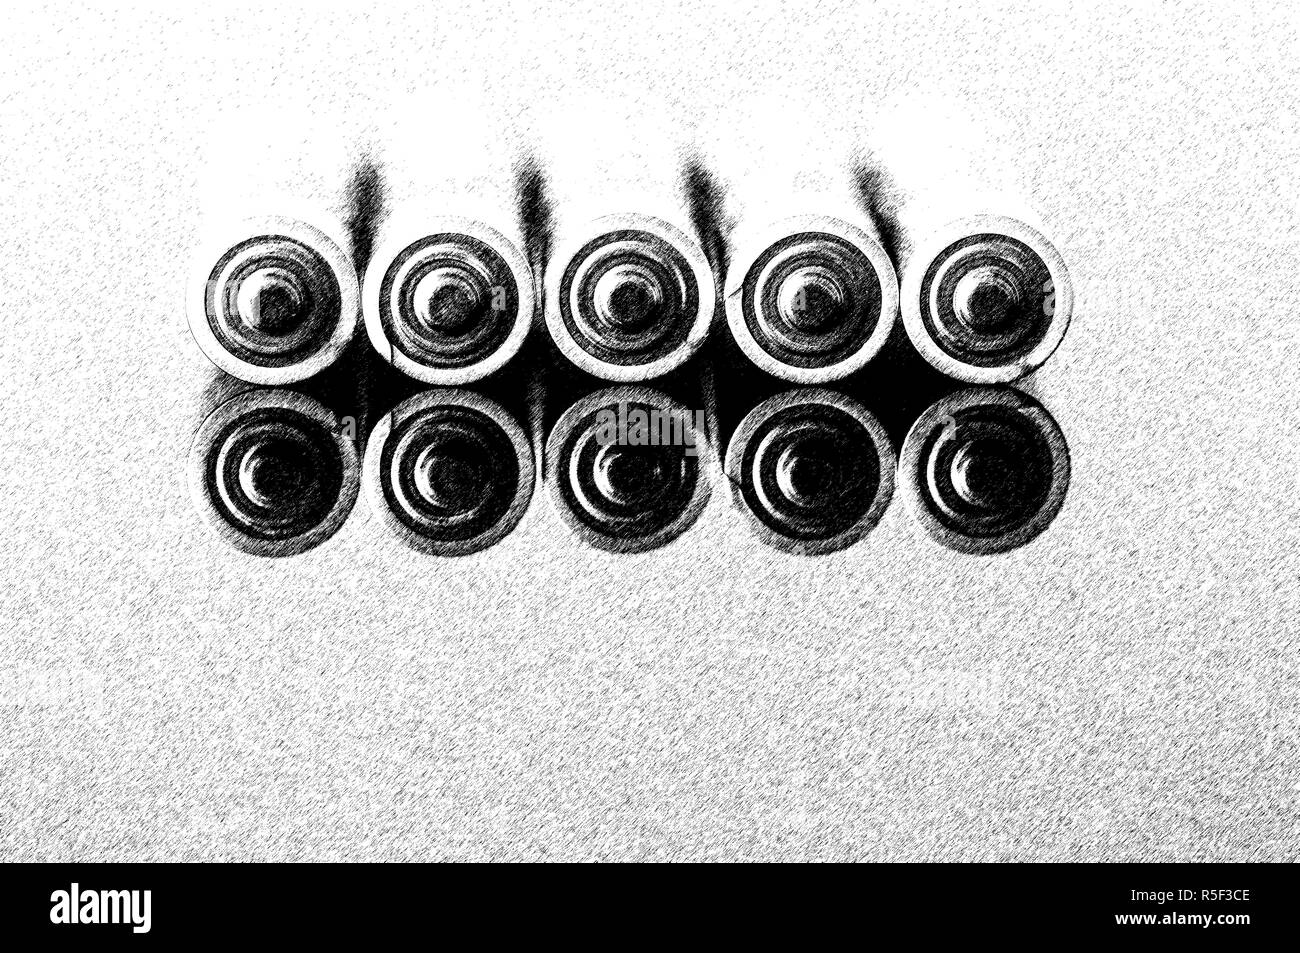 Energy Abstract Background Batteries. Mirror Effect. Graphic Pen Effect. Black And White Photo - Stock Image